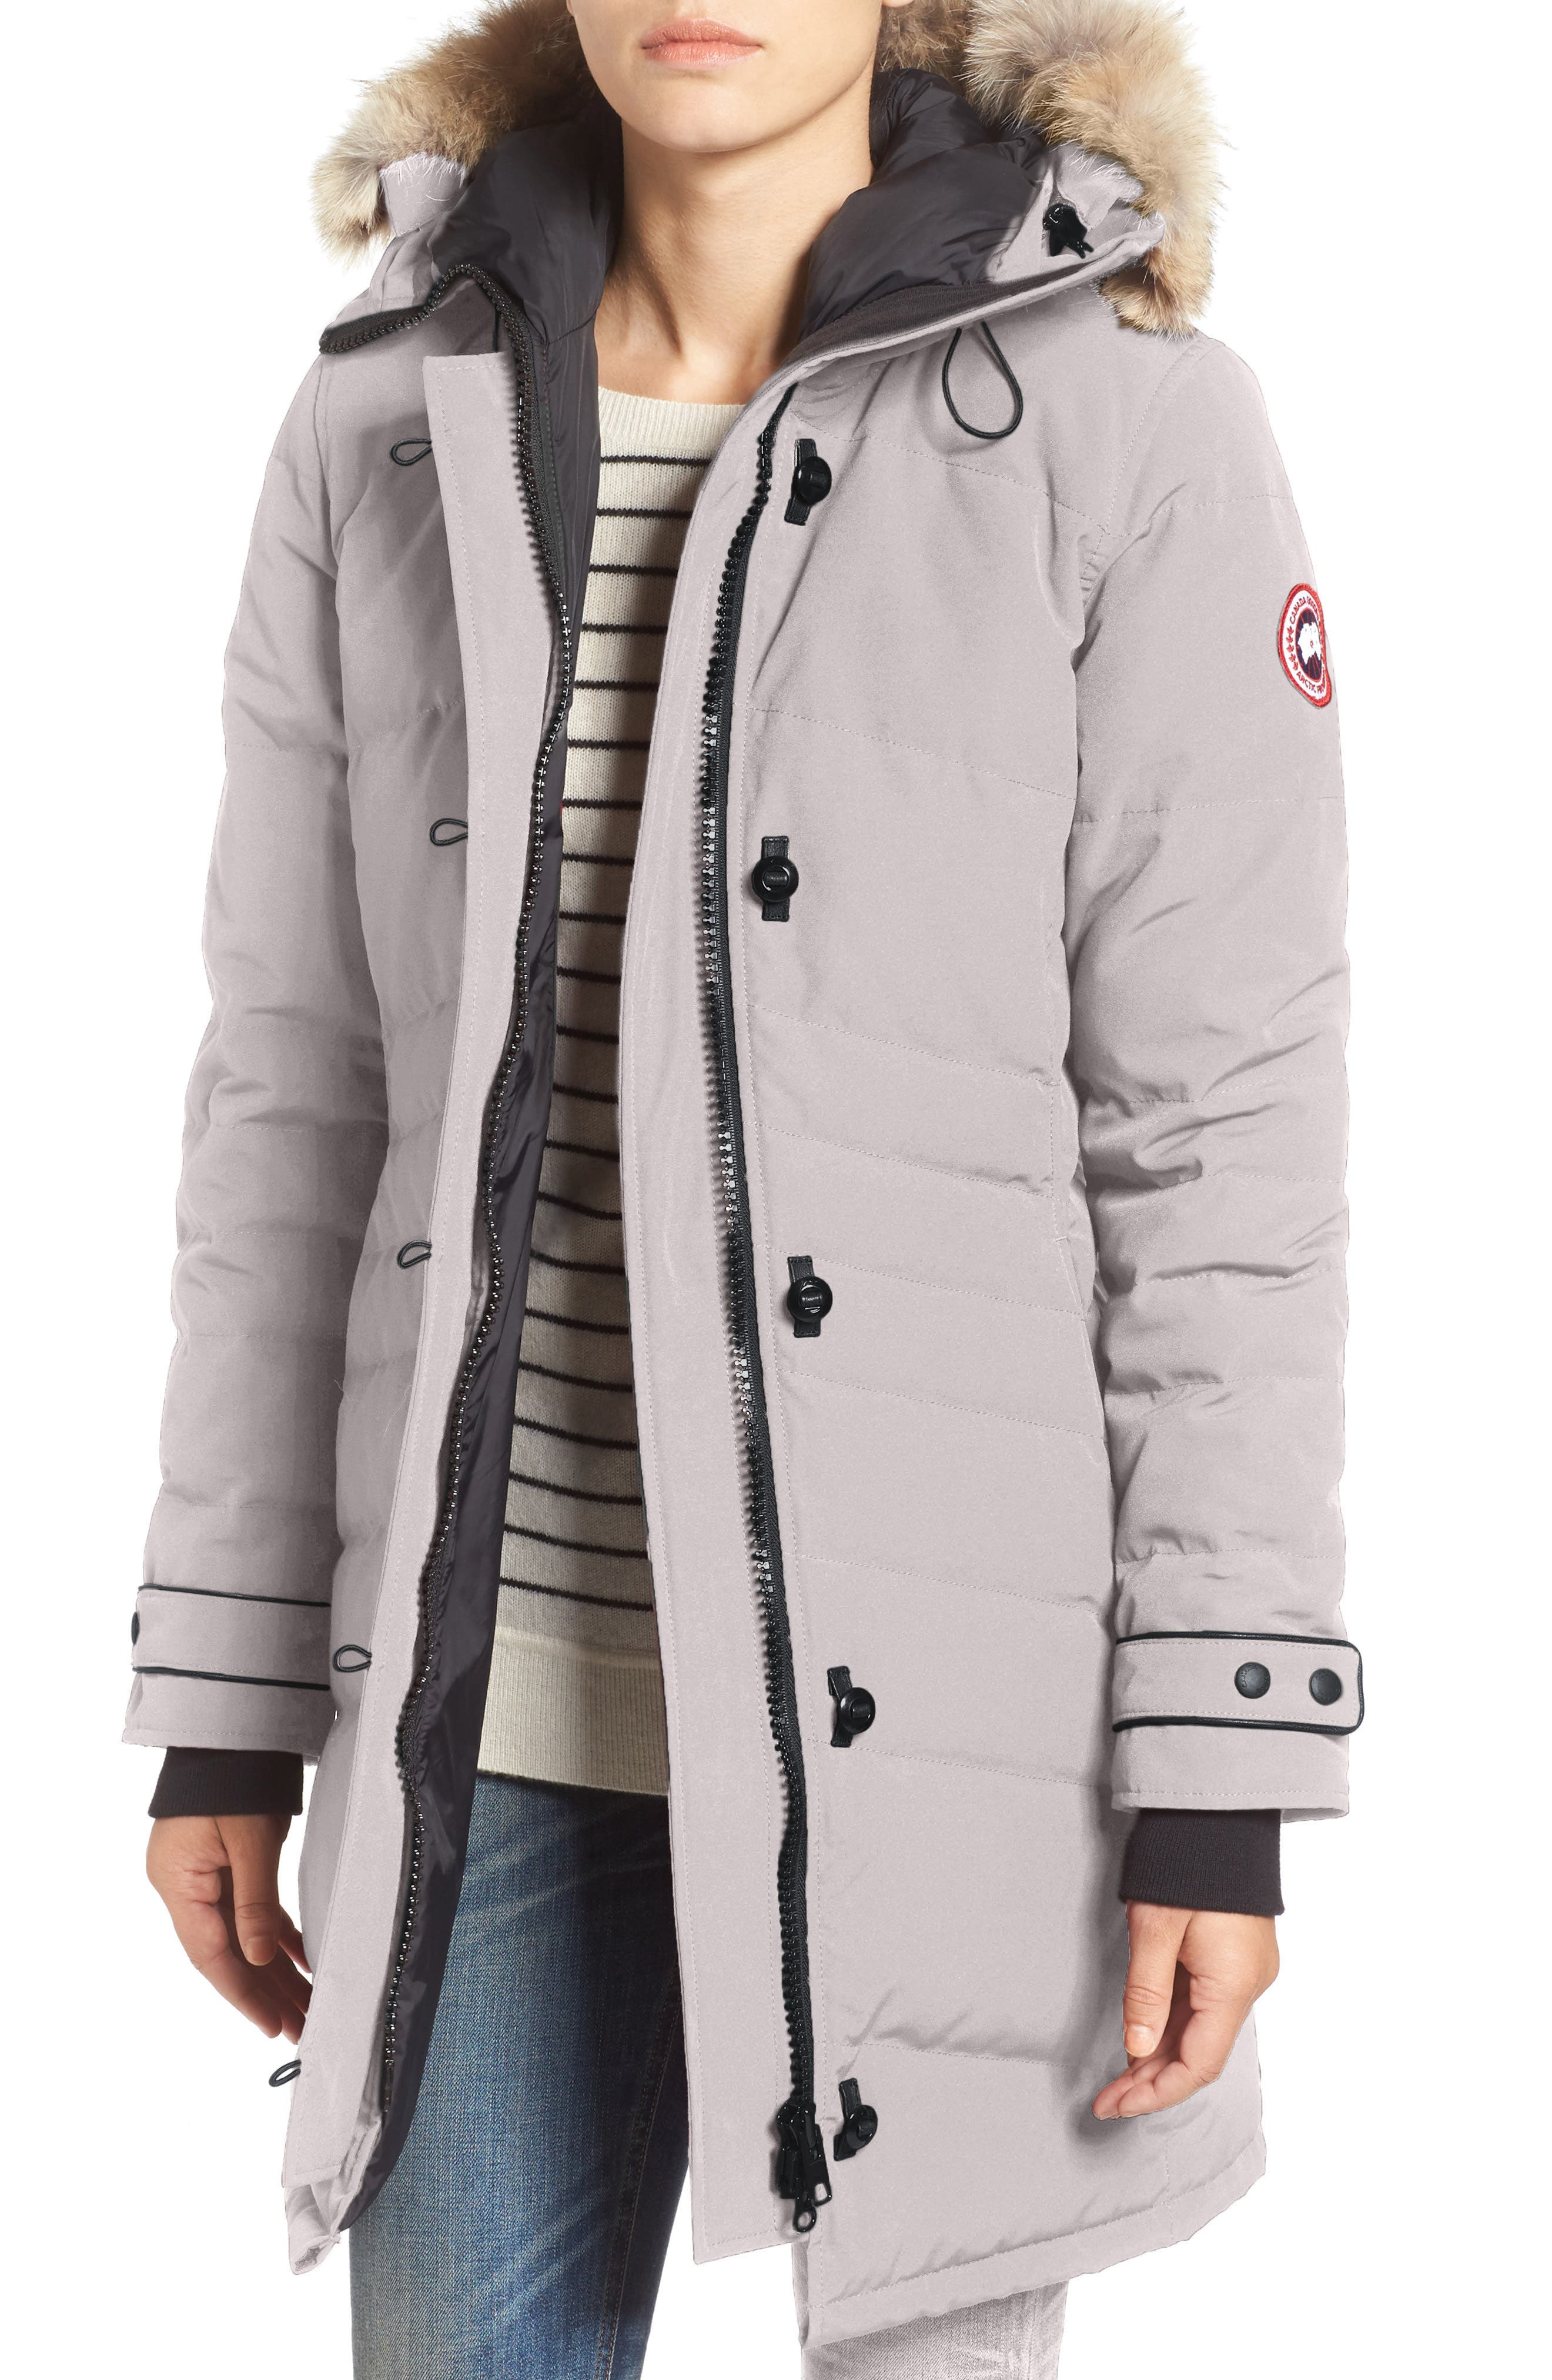 CANADA GOOSE, 'Lorette' Hooded Down Parka with Genuine Coyote Fur Trim, Main thumbnail 1, color, LIMESTONE